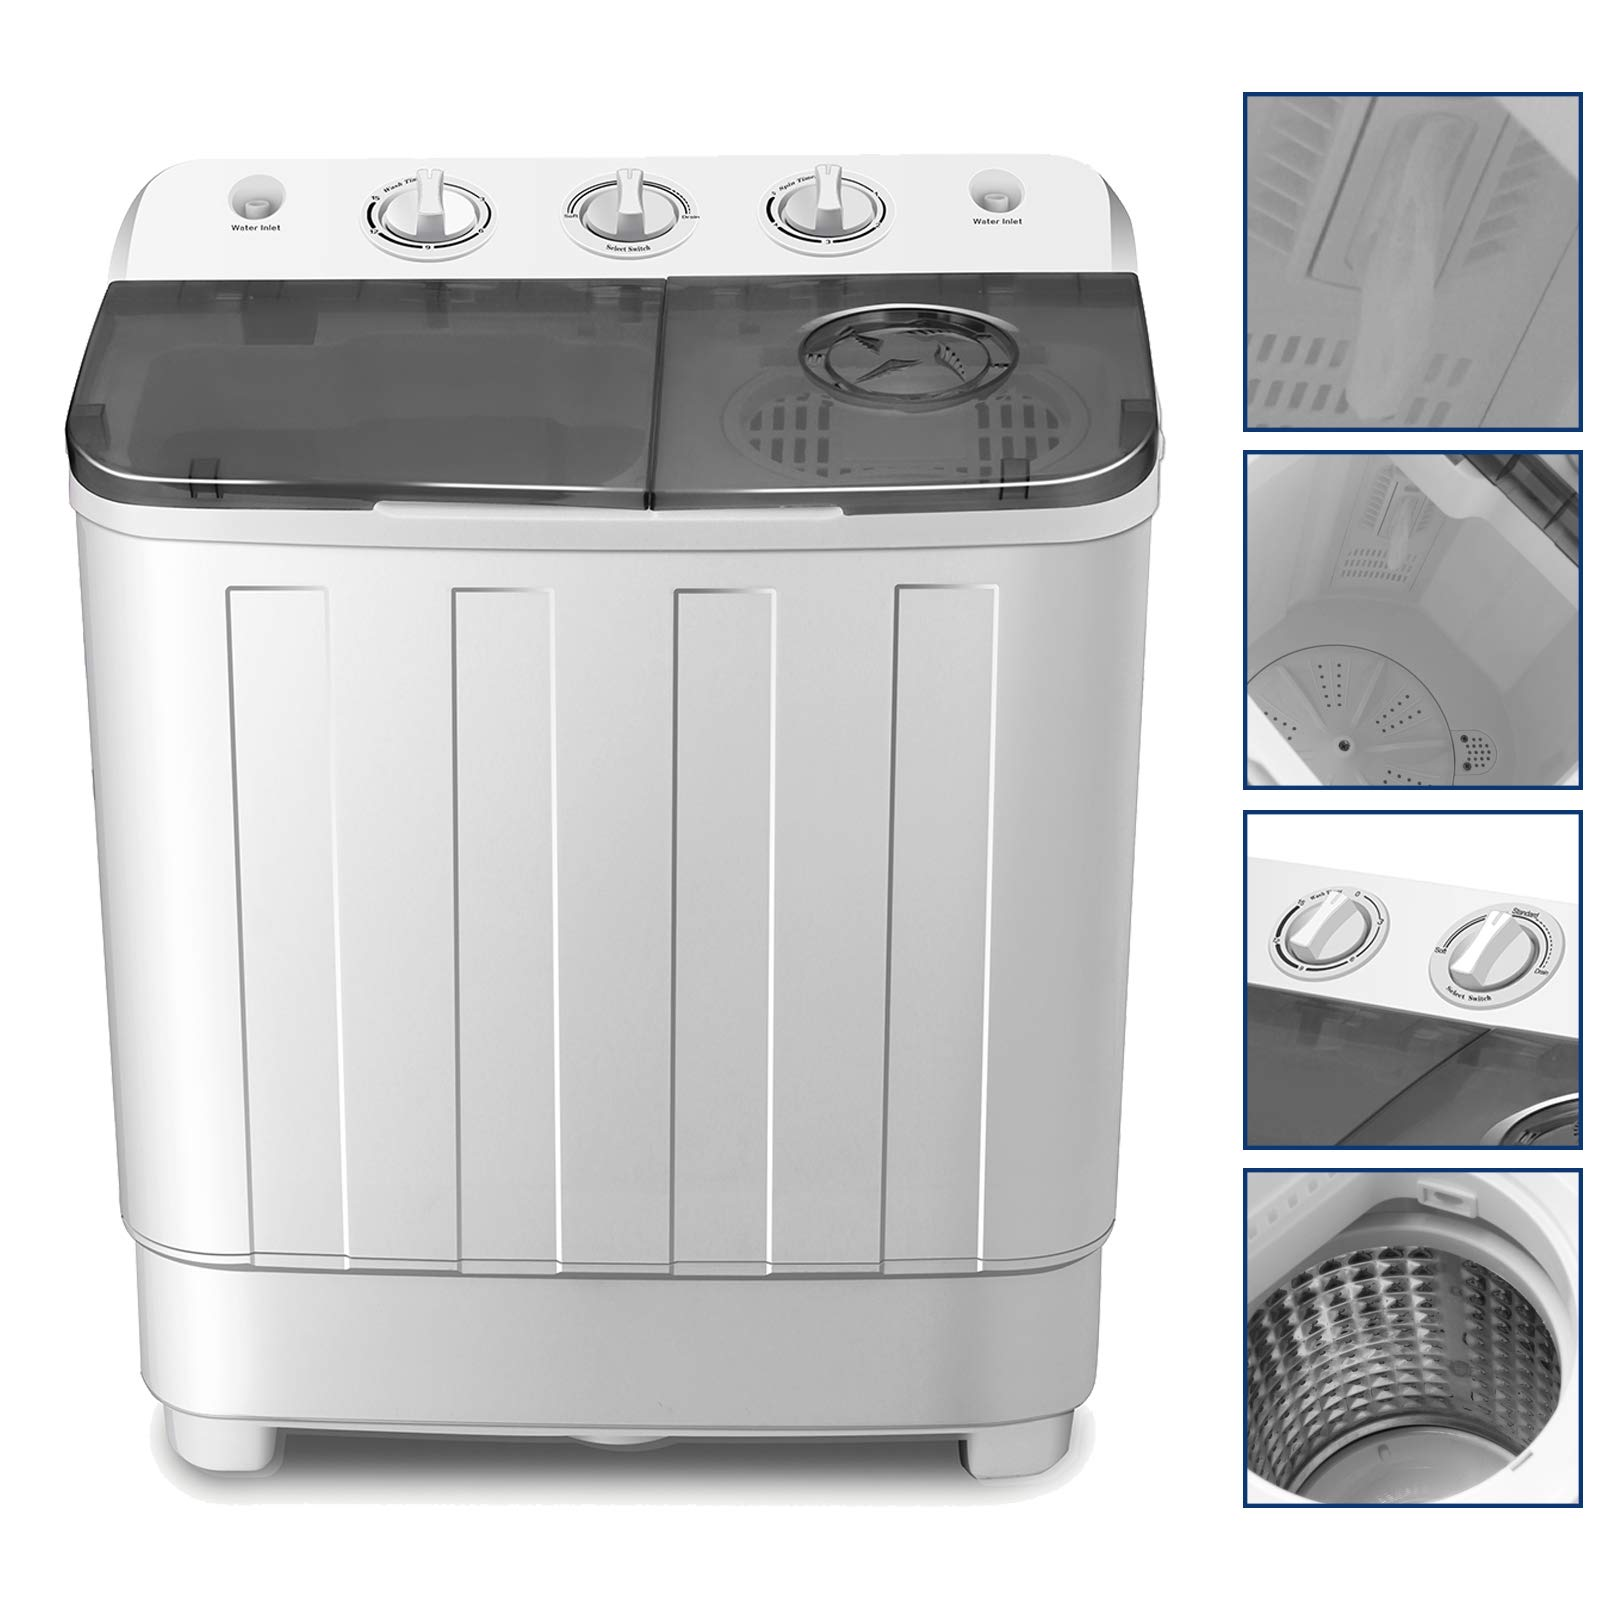 4-EVER Portable Mini Compact Washing Machine Twin Tub Washer and Spinner Dryer Combo 17lbs For Dorms Apartments RV's College Rooms Camping by 4-Ever